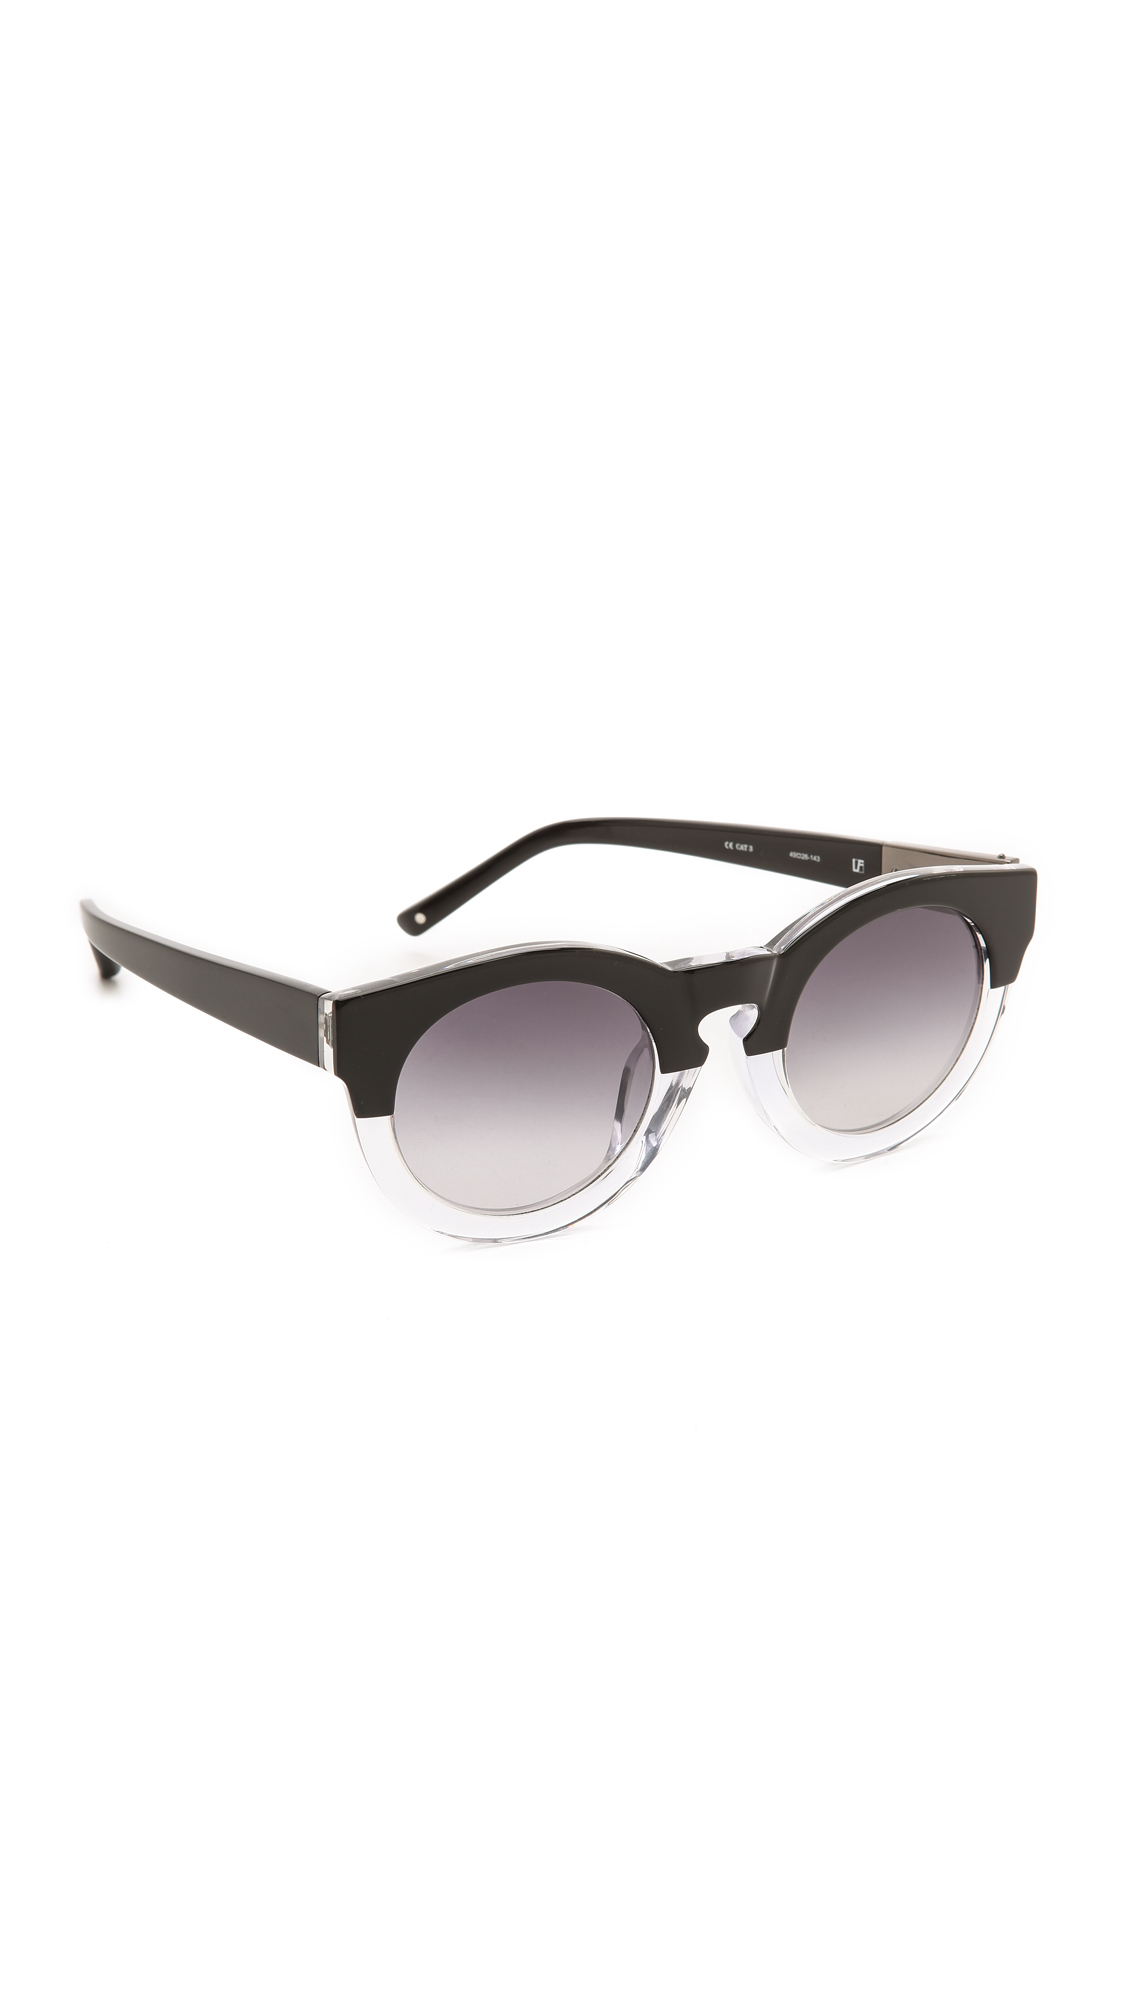 3.1 phillip lim Thick Frame Sunglasses in Black Lyst